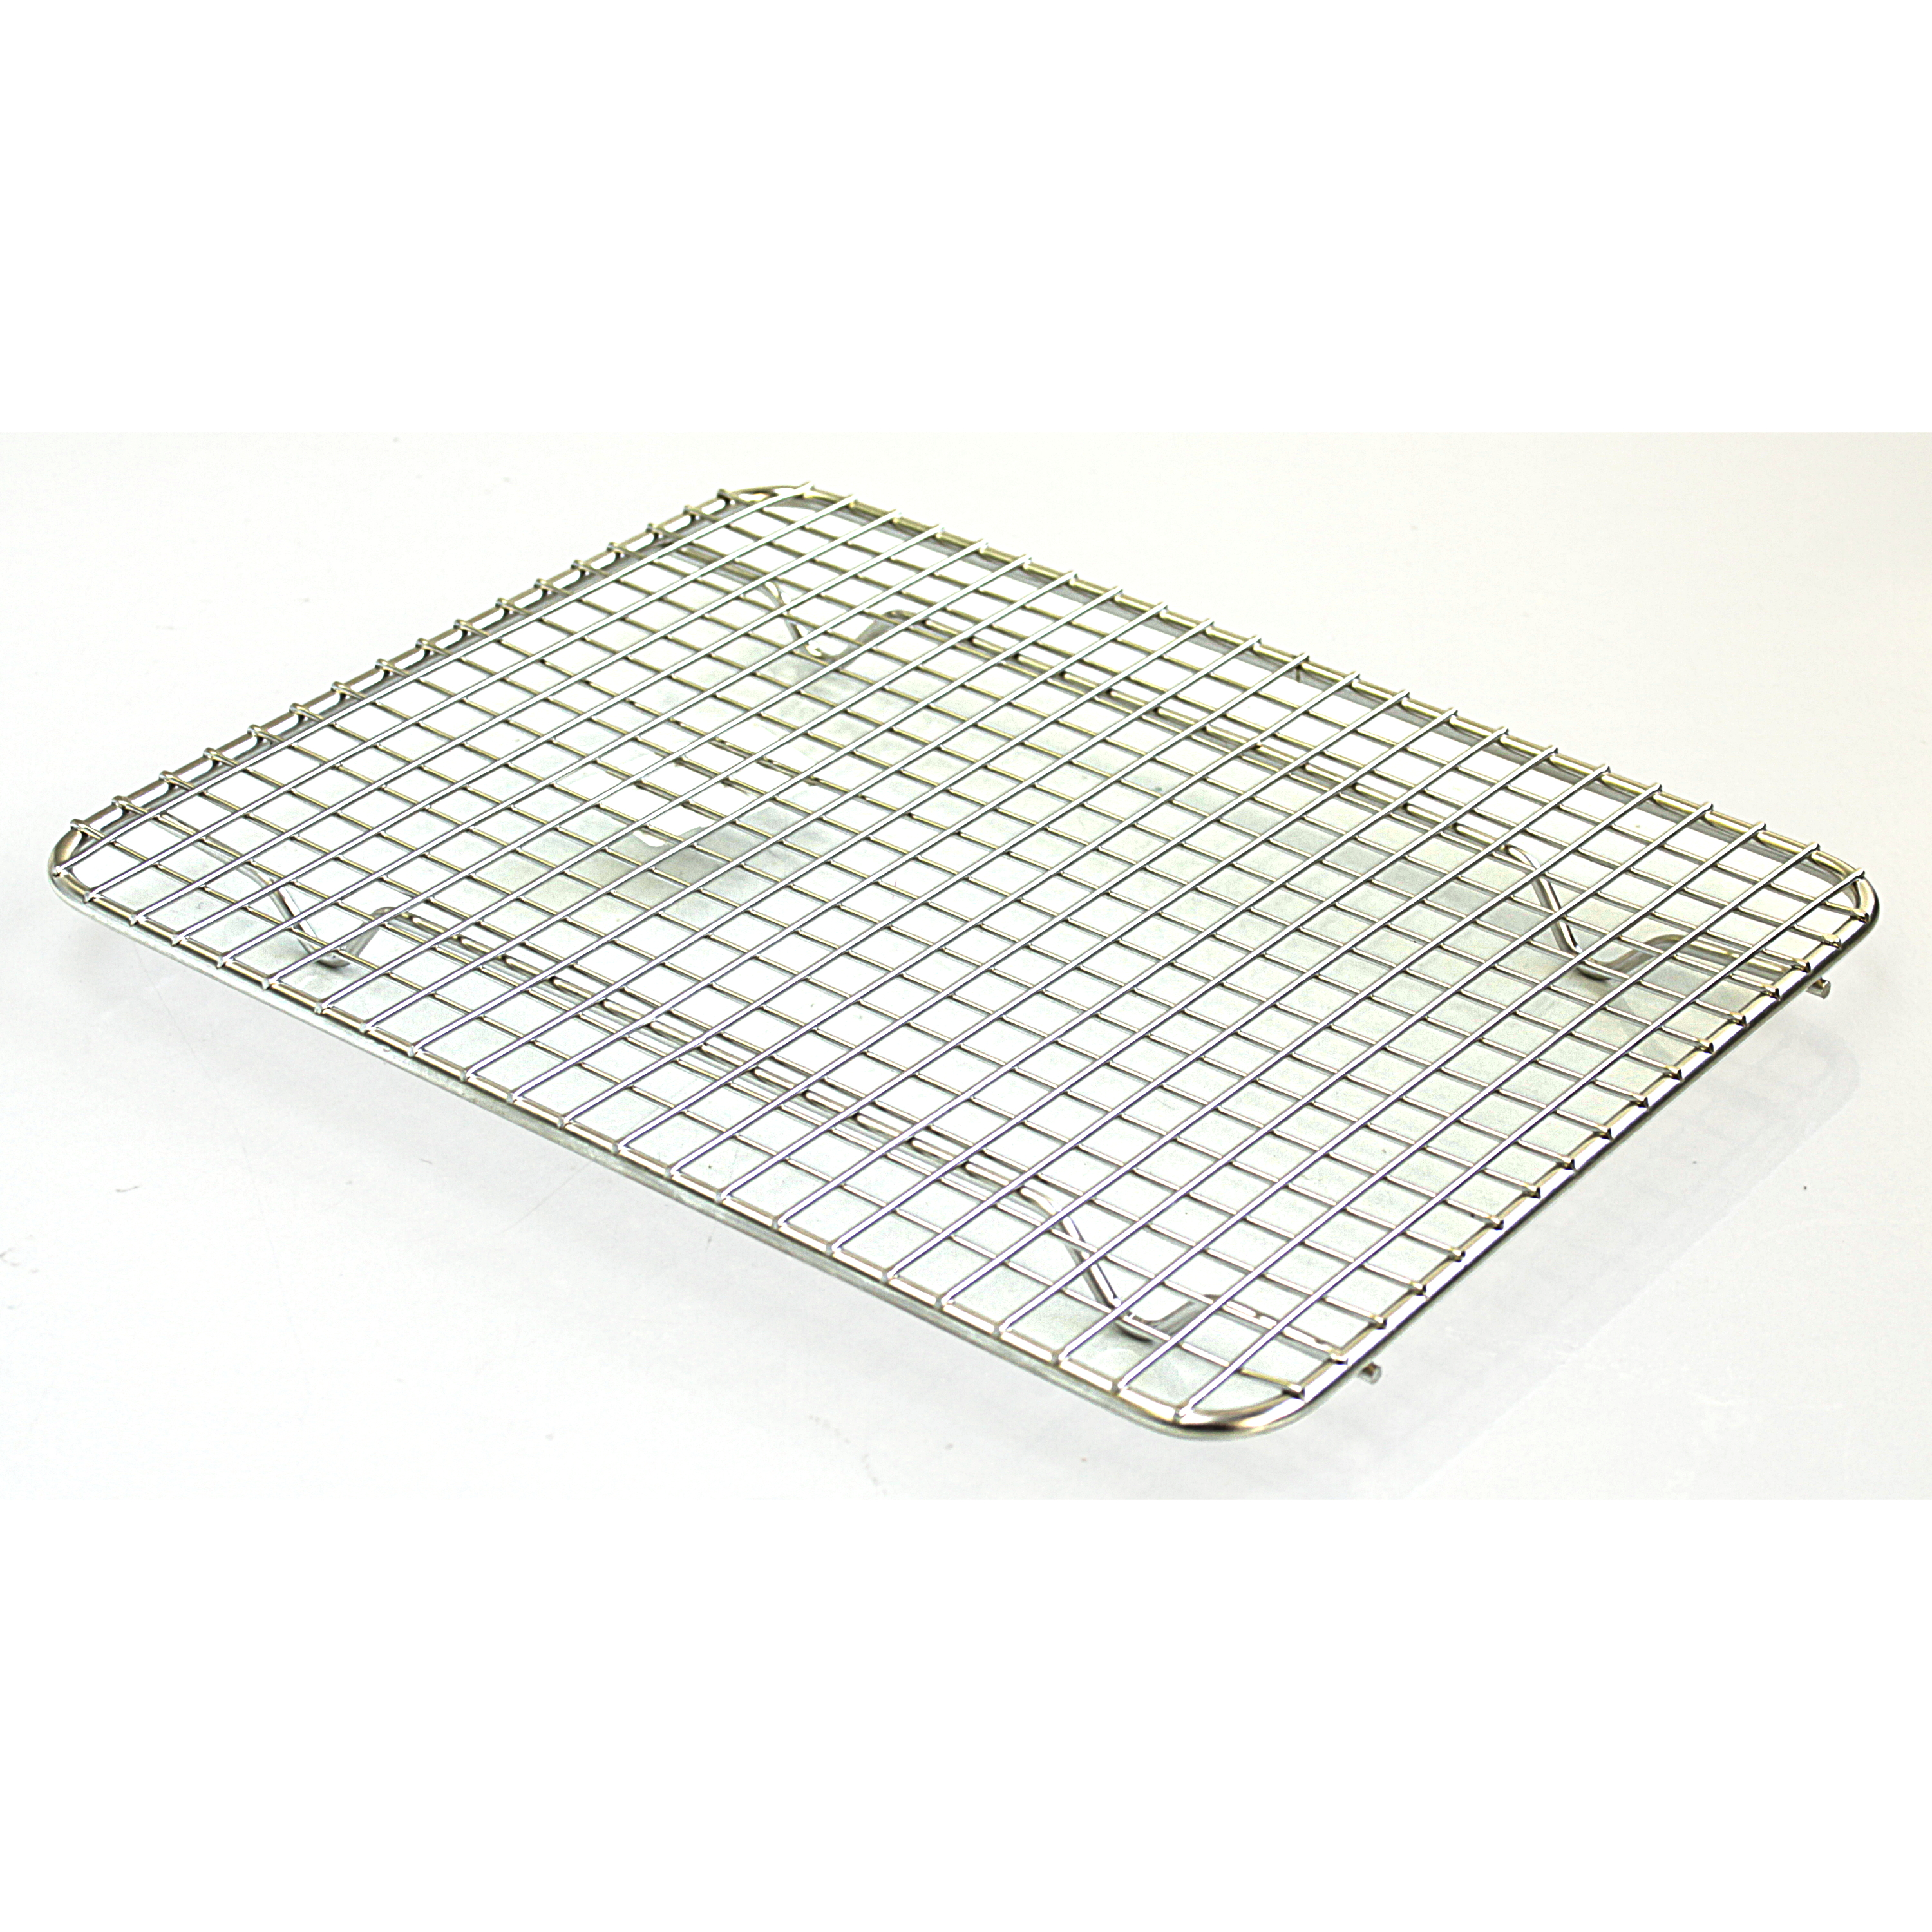 Browne Basics Double Nickel Plated Rectangular Cooling Grate, 10 x 8 Inch